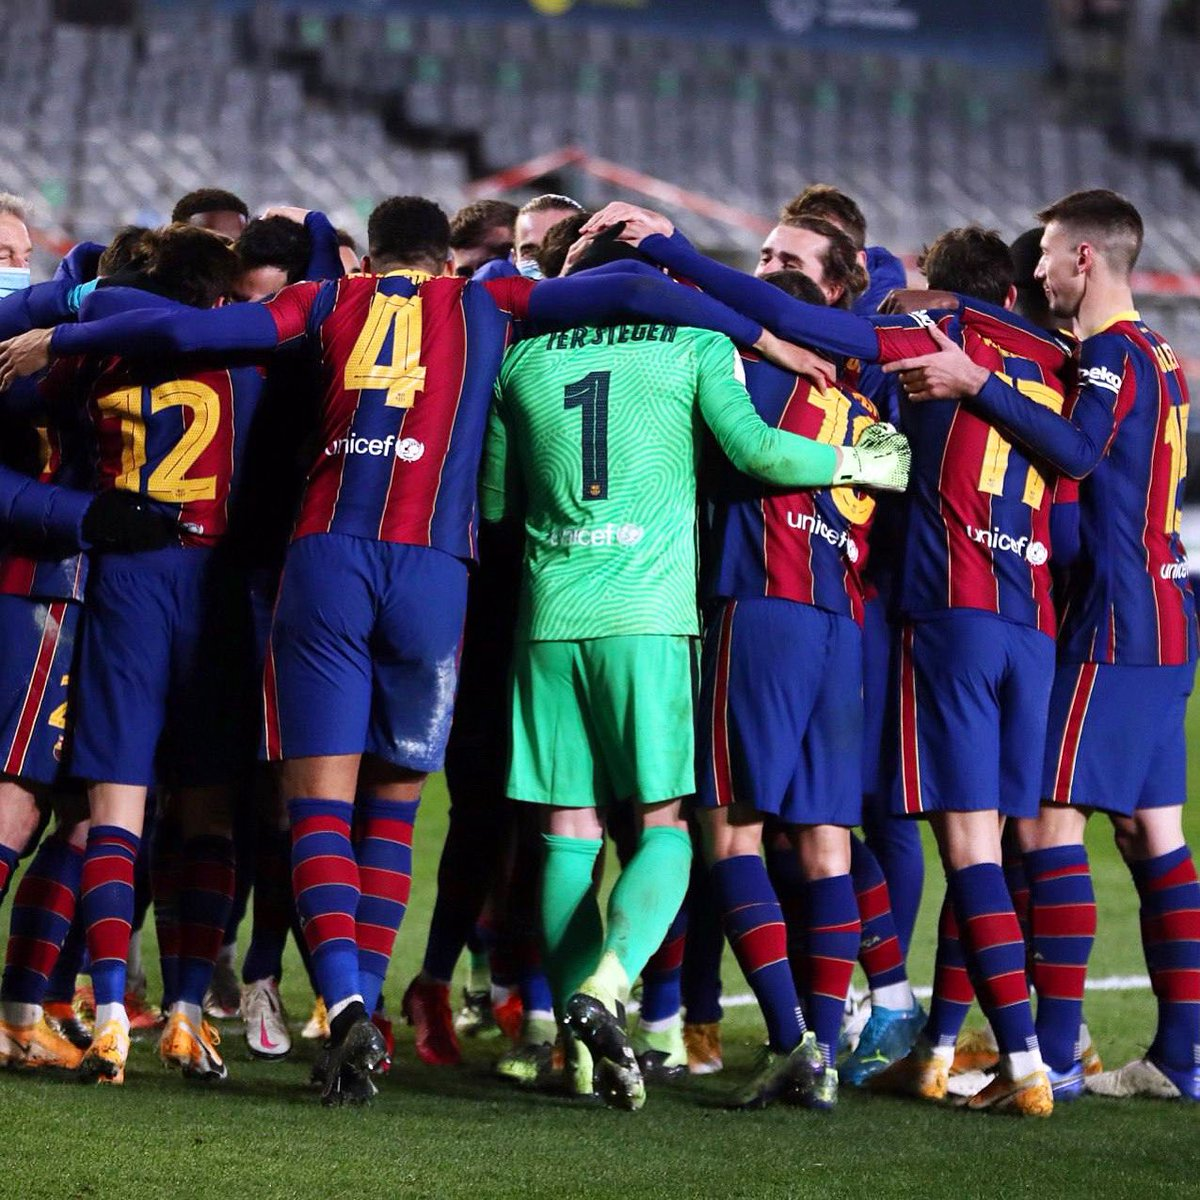 A big night, fantastic team spirit and attitude from us. Now we recover and prepare for the final on Sunday. Força Barça!💪🏻🔵🔴 @FCBarcelona